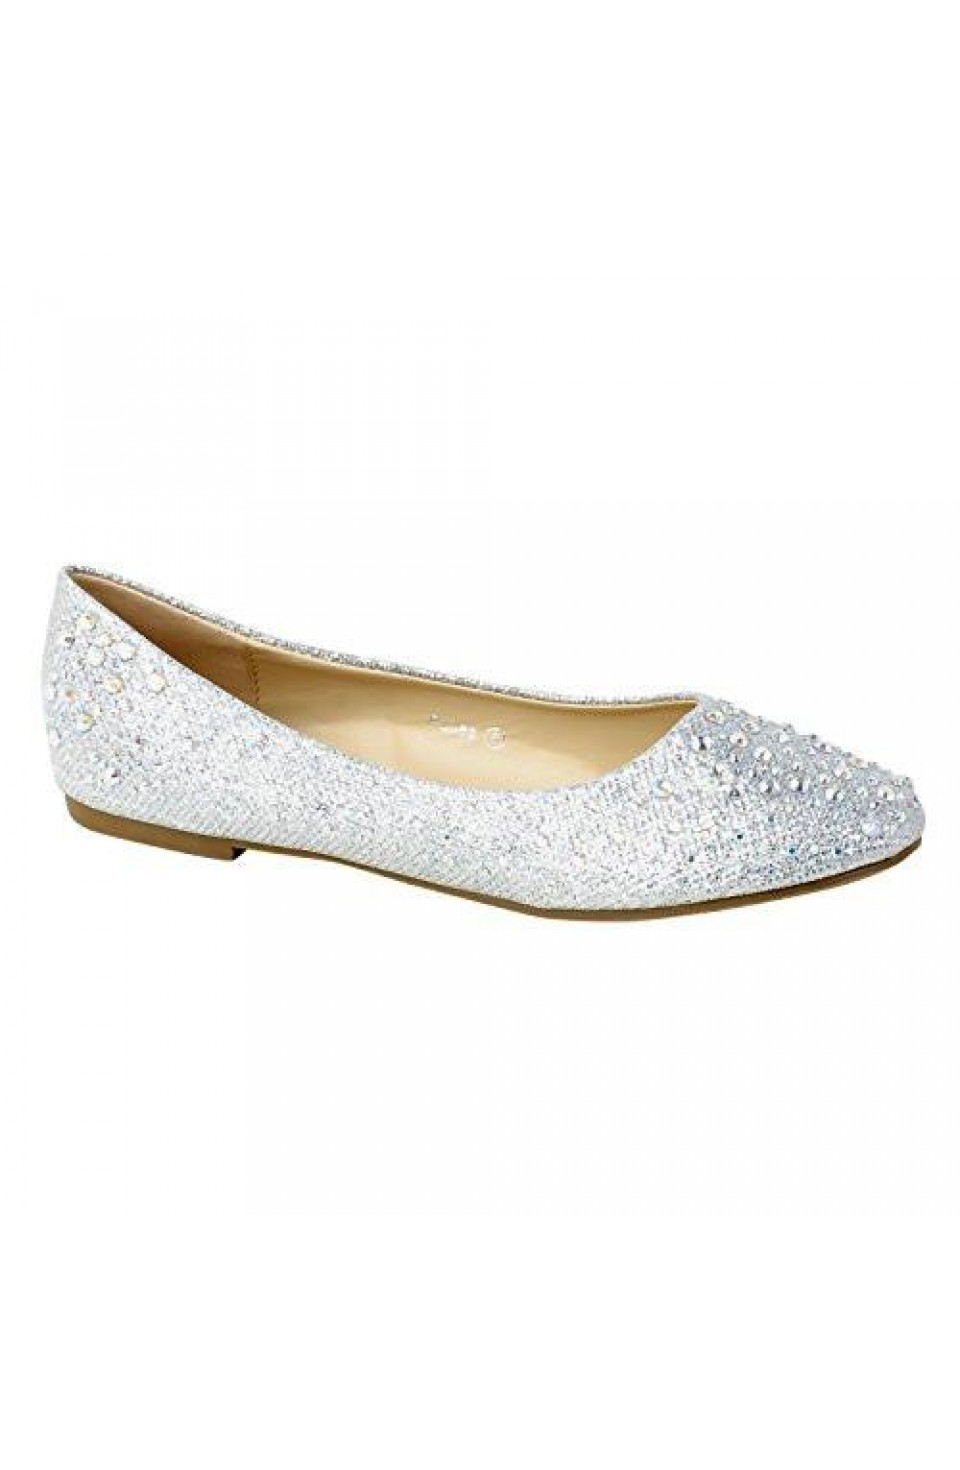 Women's Silver Manmade Pallas Studded Pump Flat with Glittering Beads